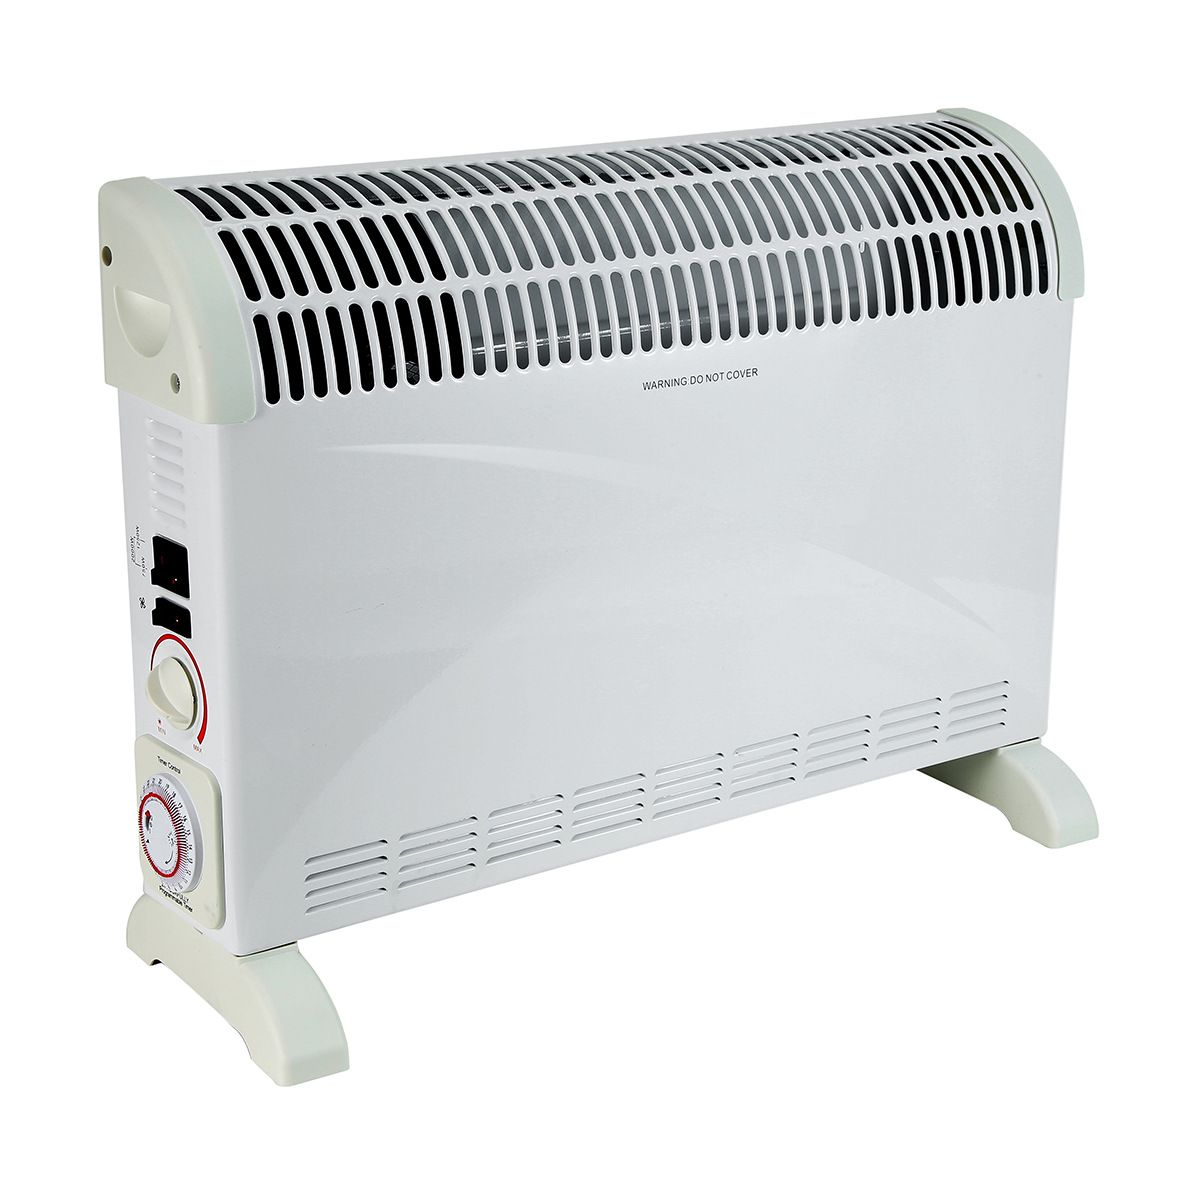 Convection Heater With Timer Kmart Heater Home Appliances